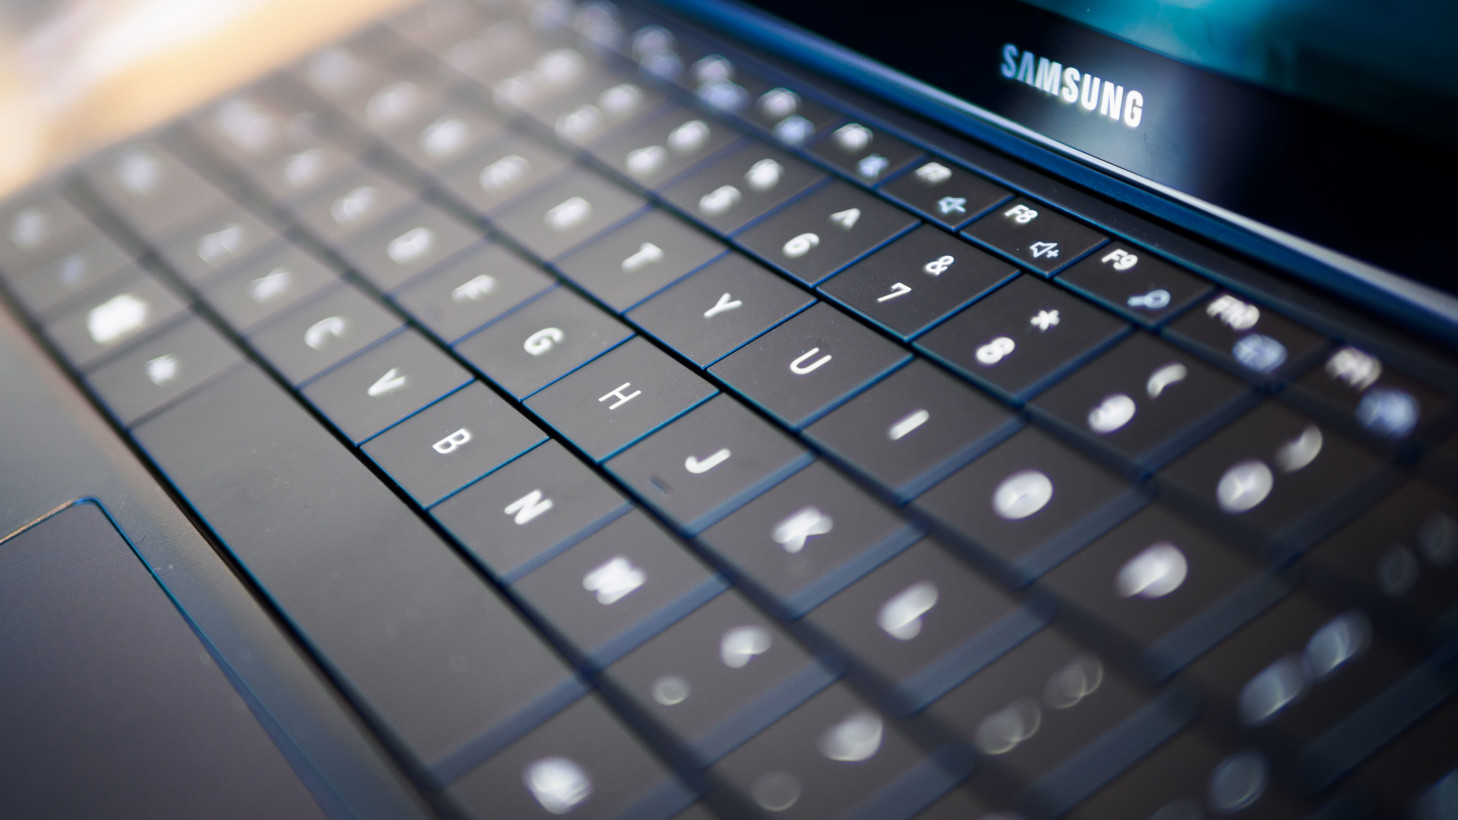 At 1.4mm of travel, the keyboard is a surprisingly pleasant typing experience for a tablet.